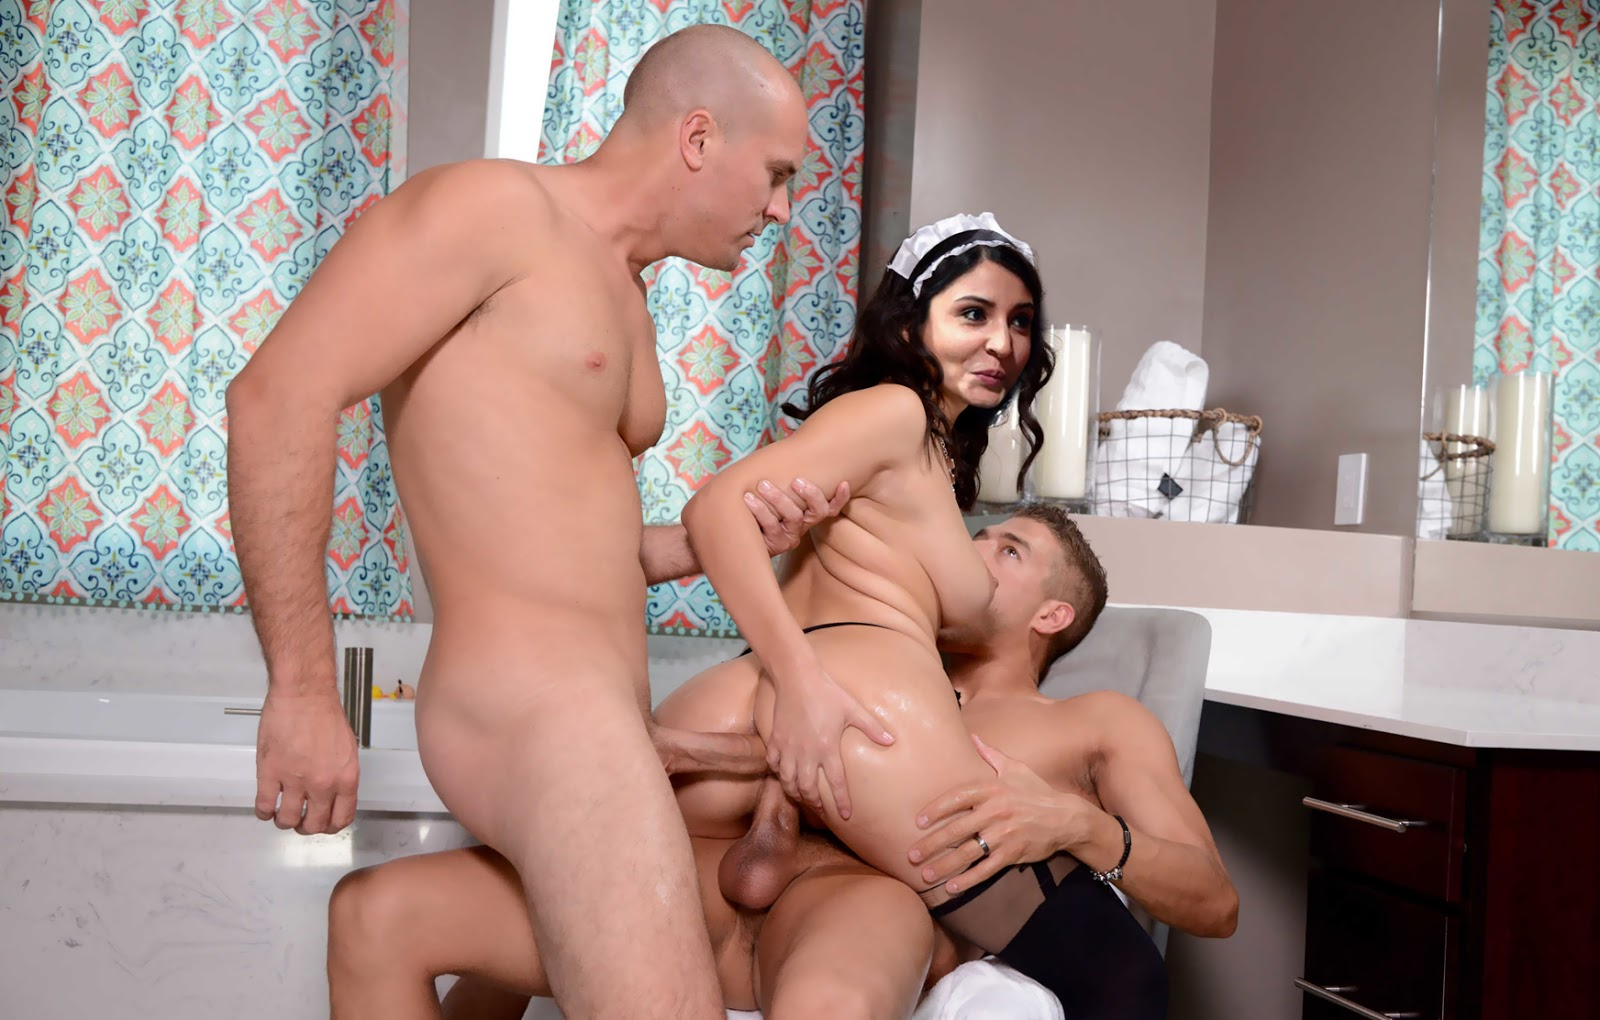 traci lord porn video